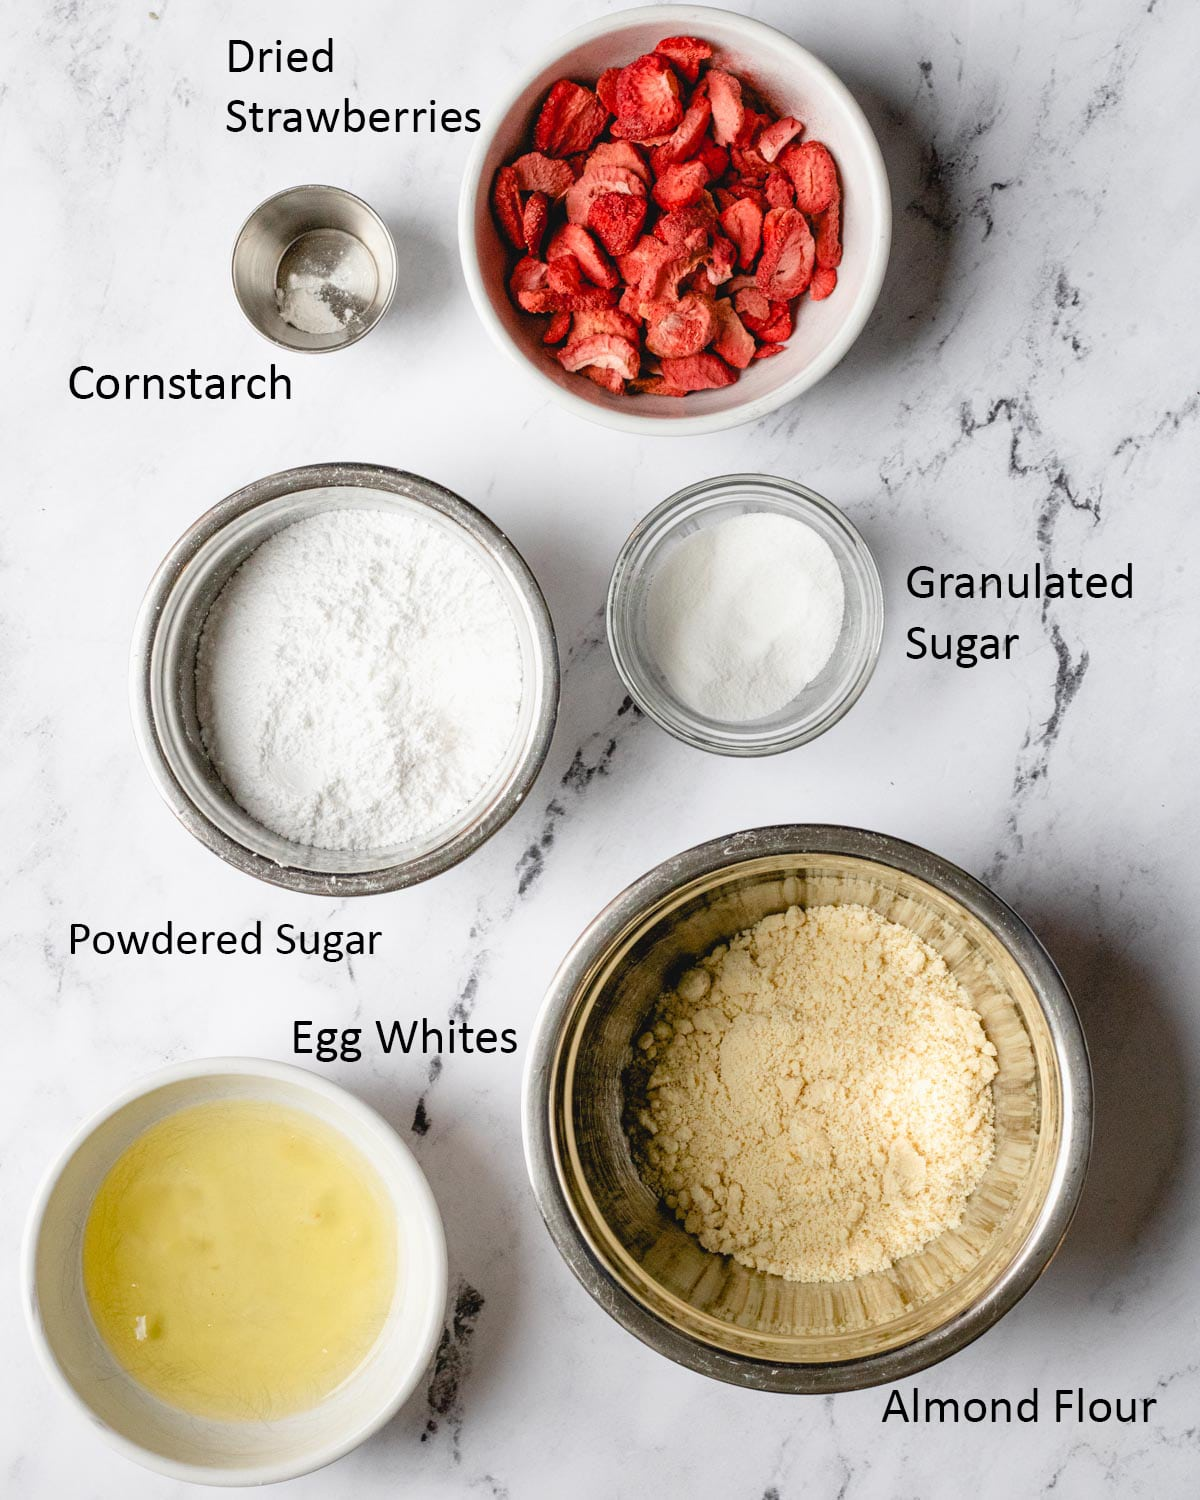 Strawberry Macaron ingredients: freeze-dried strawberries, egg whites, almond flour, granulated sugar, confectioners' sugar, and cornstarch.